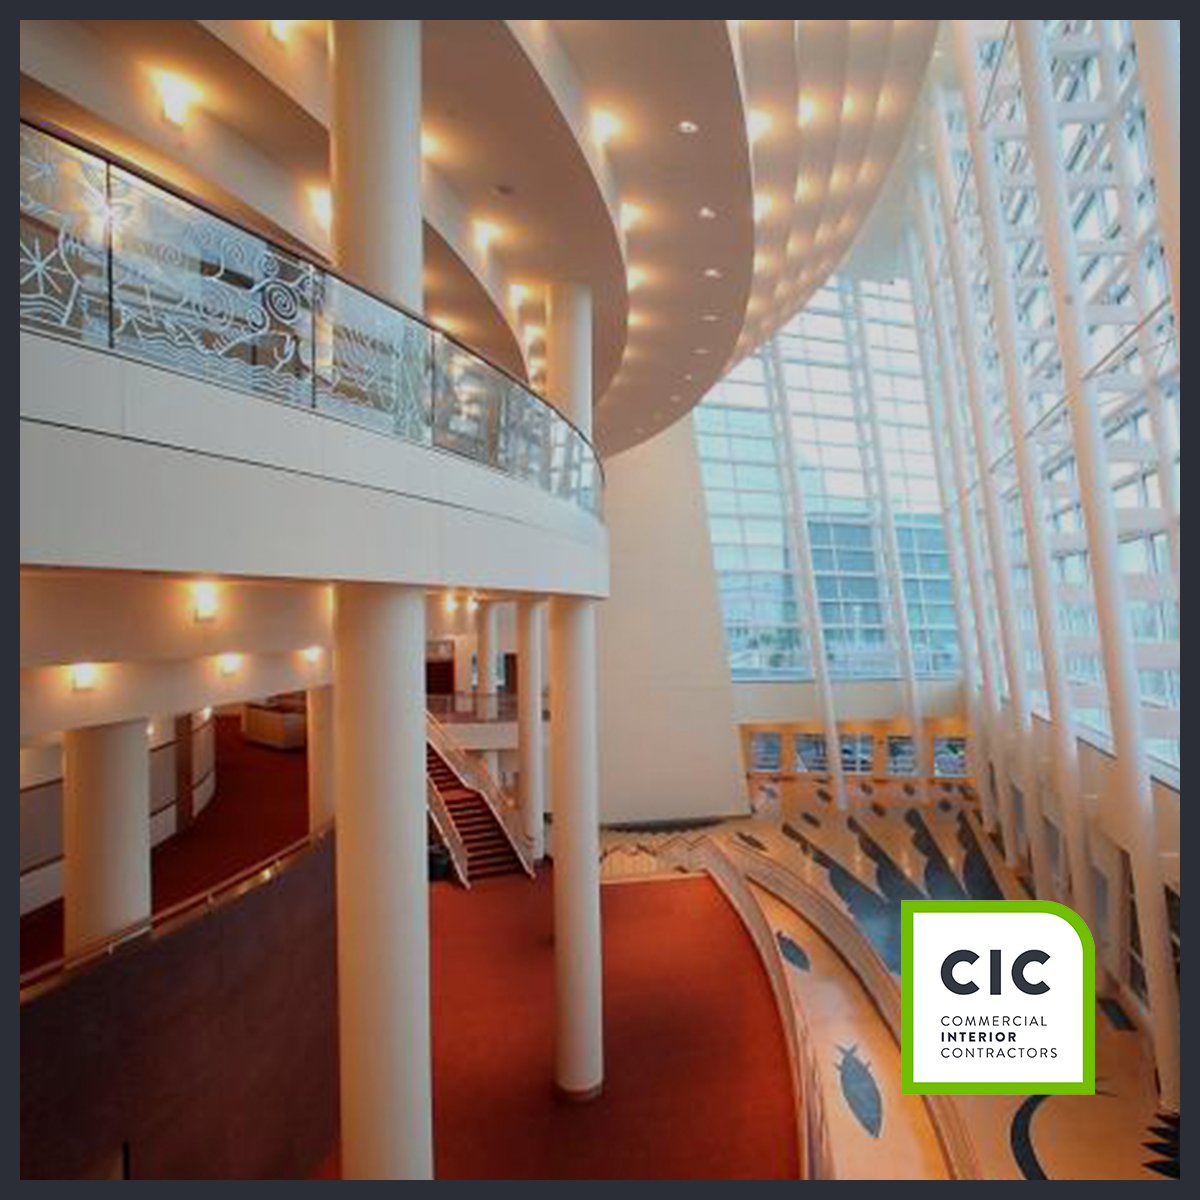 CIC Miami work at the Adrienne Arsht Center